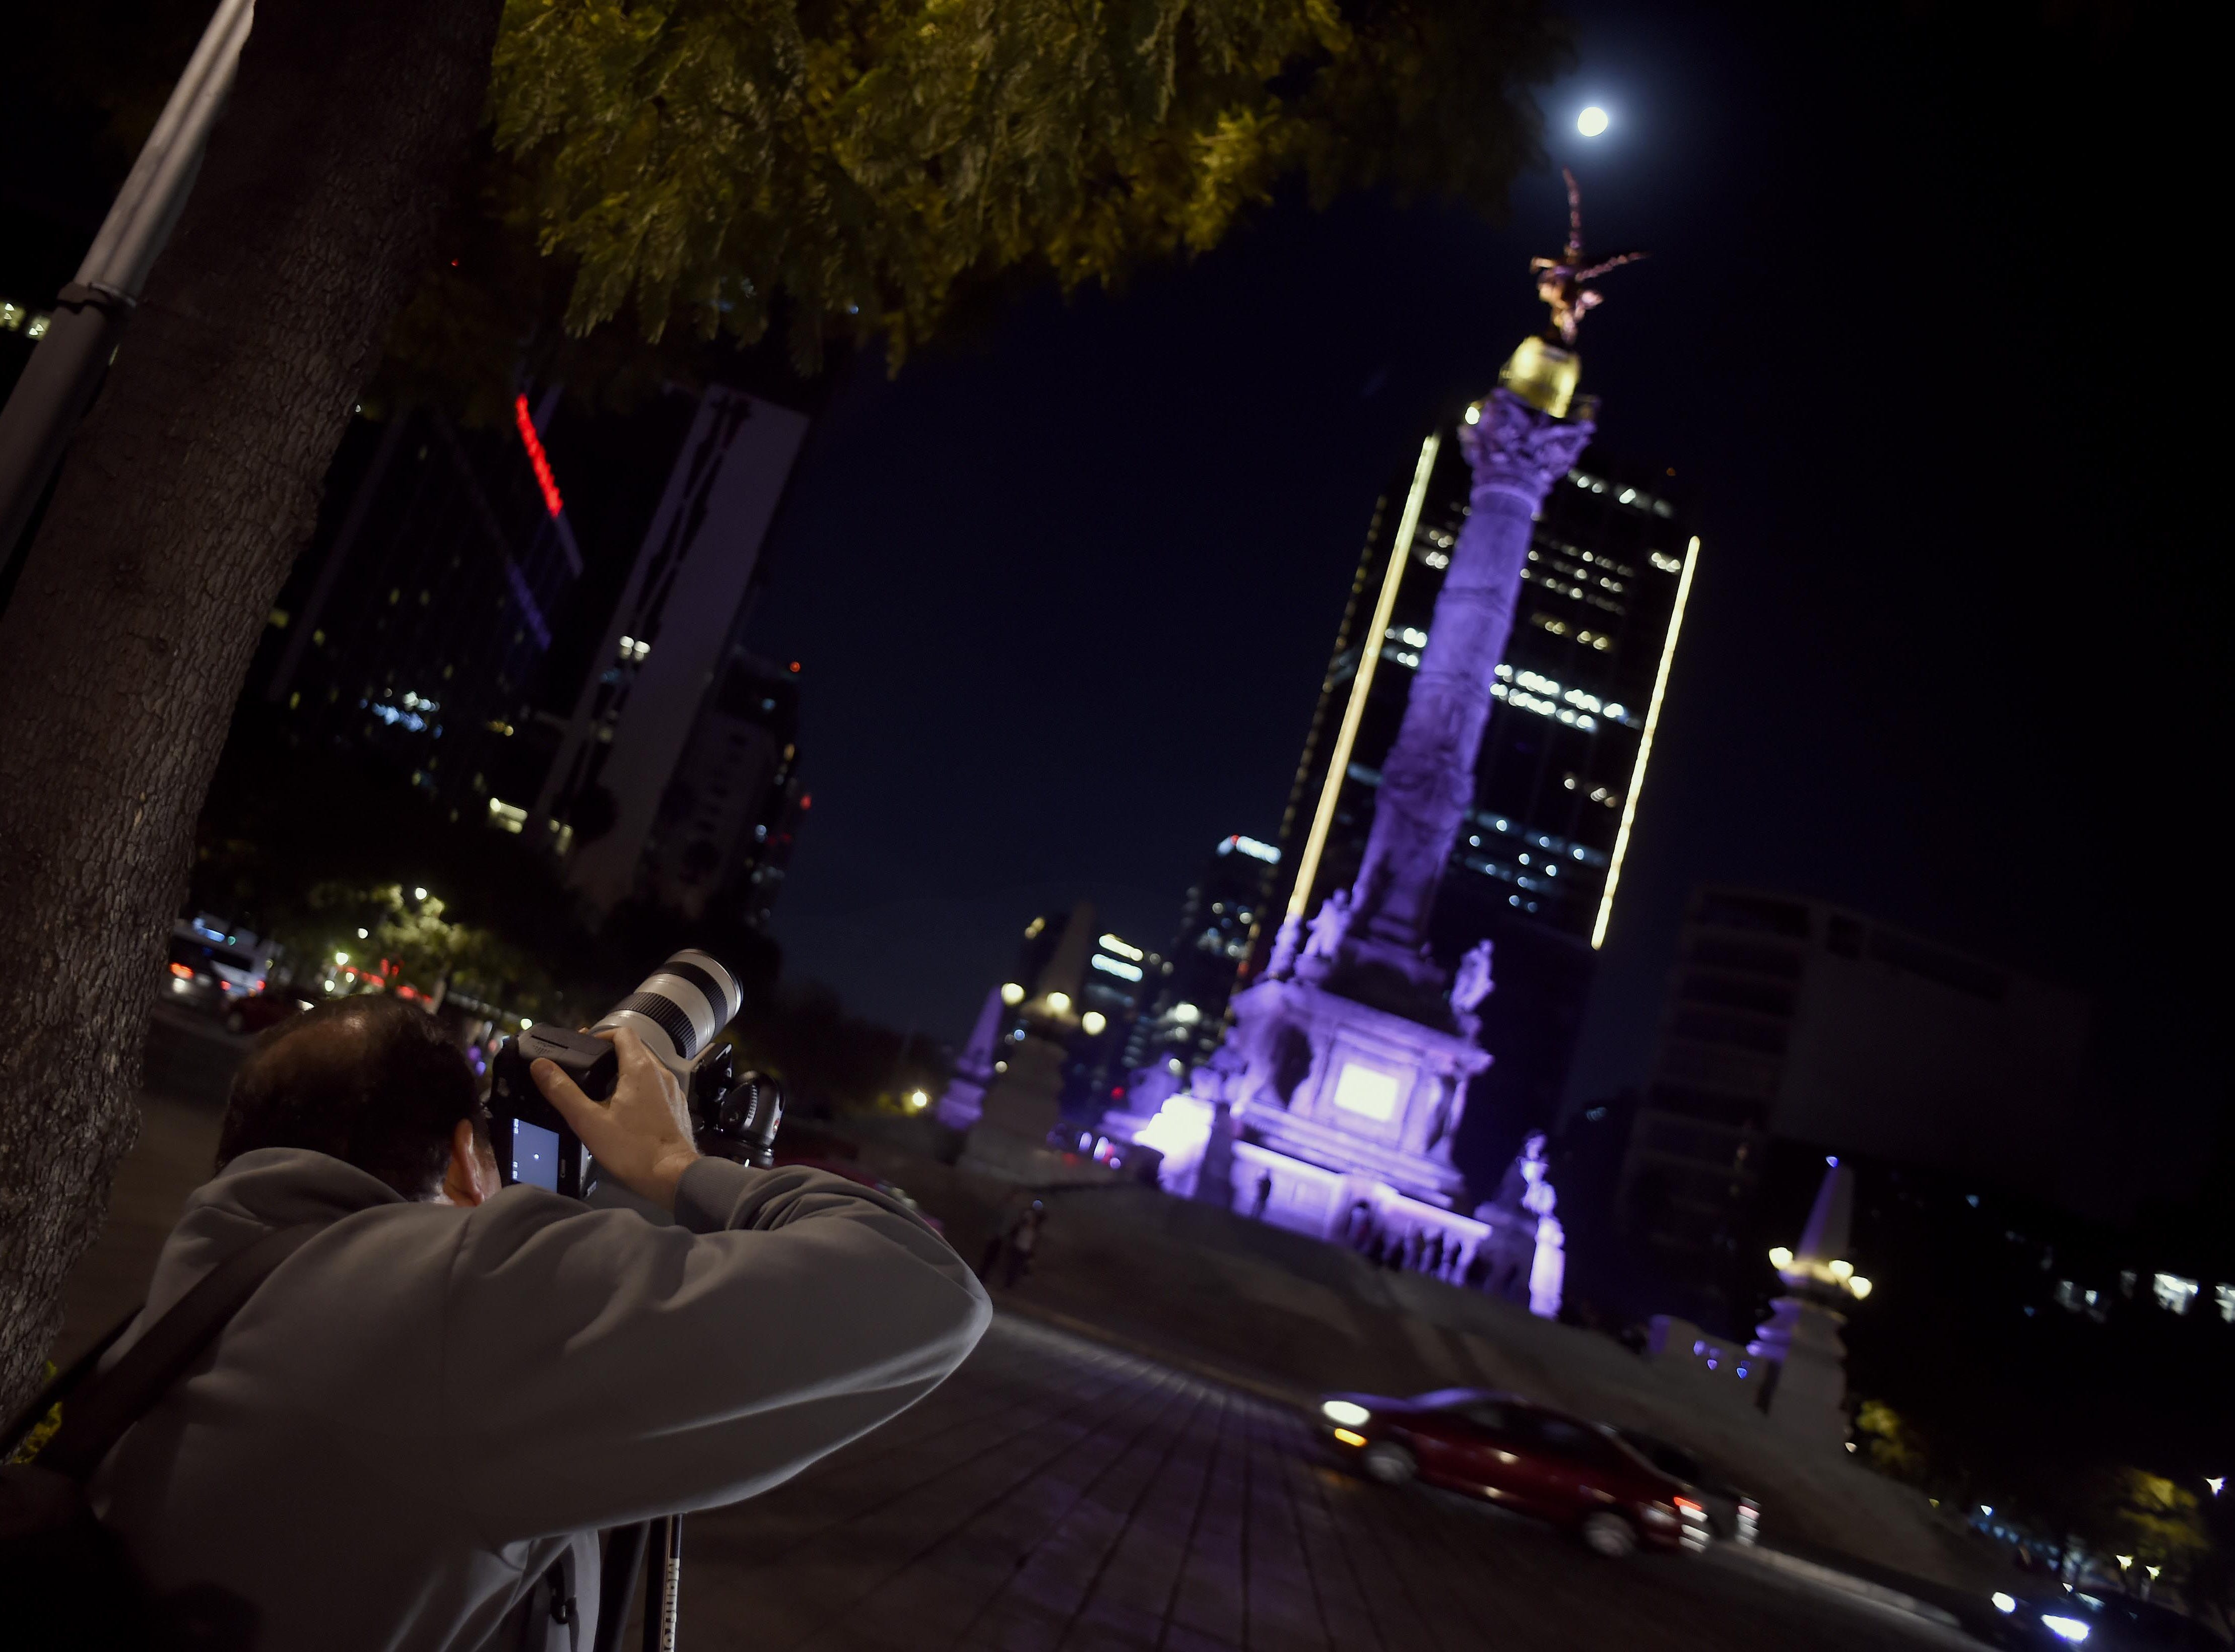 A man is taking pictures of the Super Moon during the start of the total lunar eclipse, at the Angel de la Independencia in Mexico City on January 20, 2019. (Photo by ALFREDO ESTRELLA / AFP)ALFREDO ESTRELLA/AFP/Getty Images